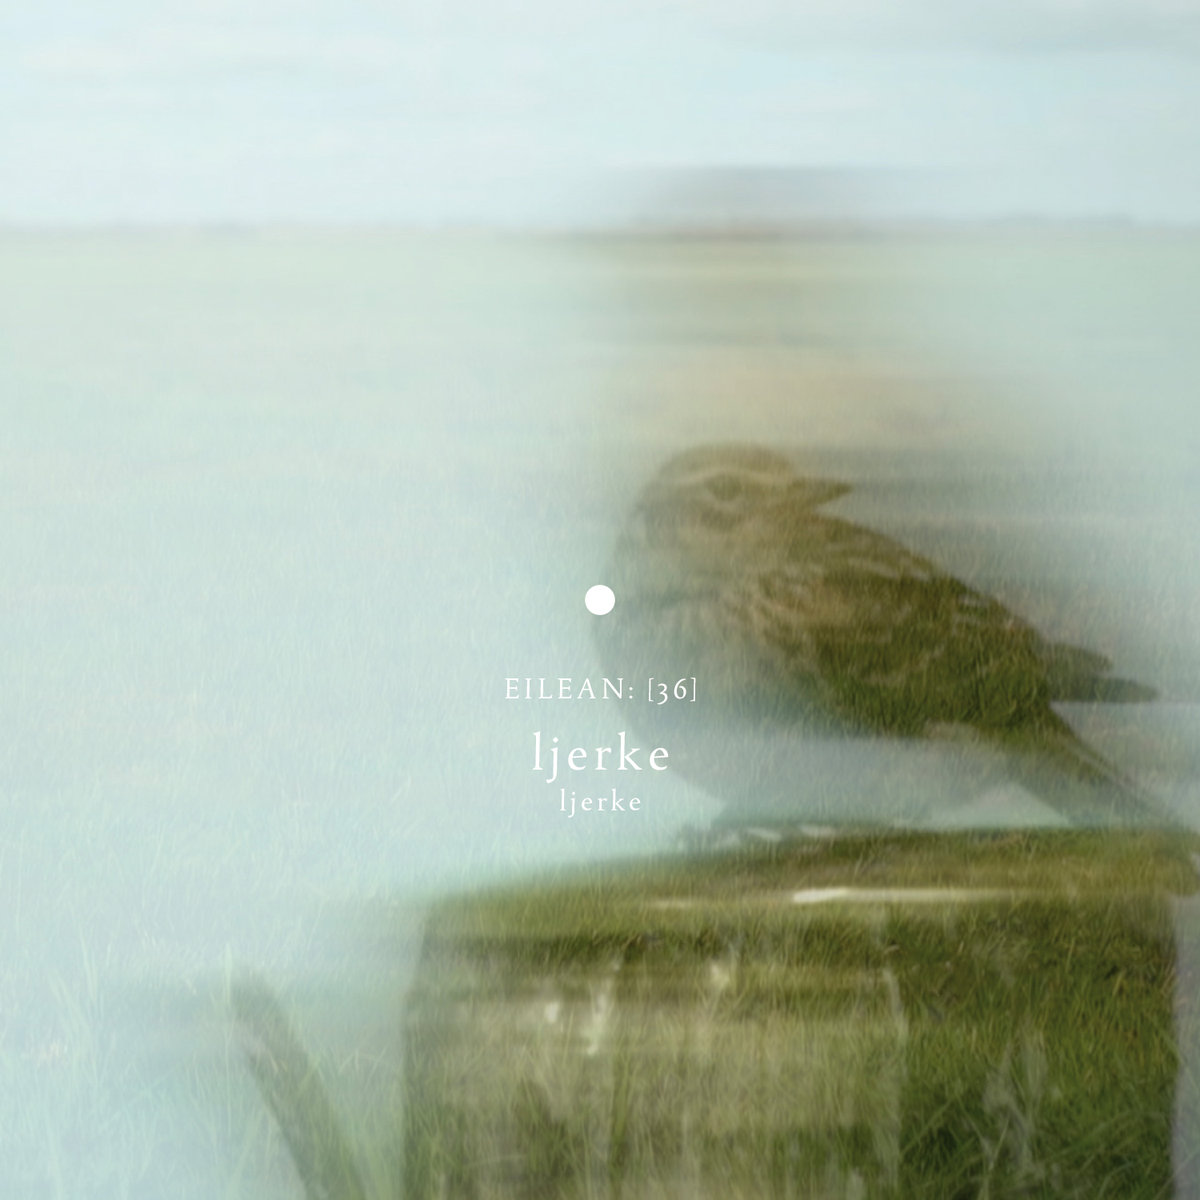 Ljerke cd/dvd release on Eilean-records